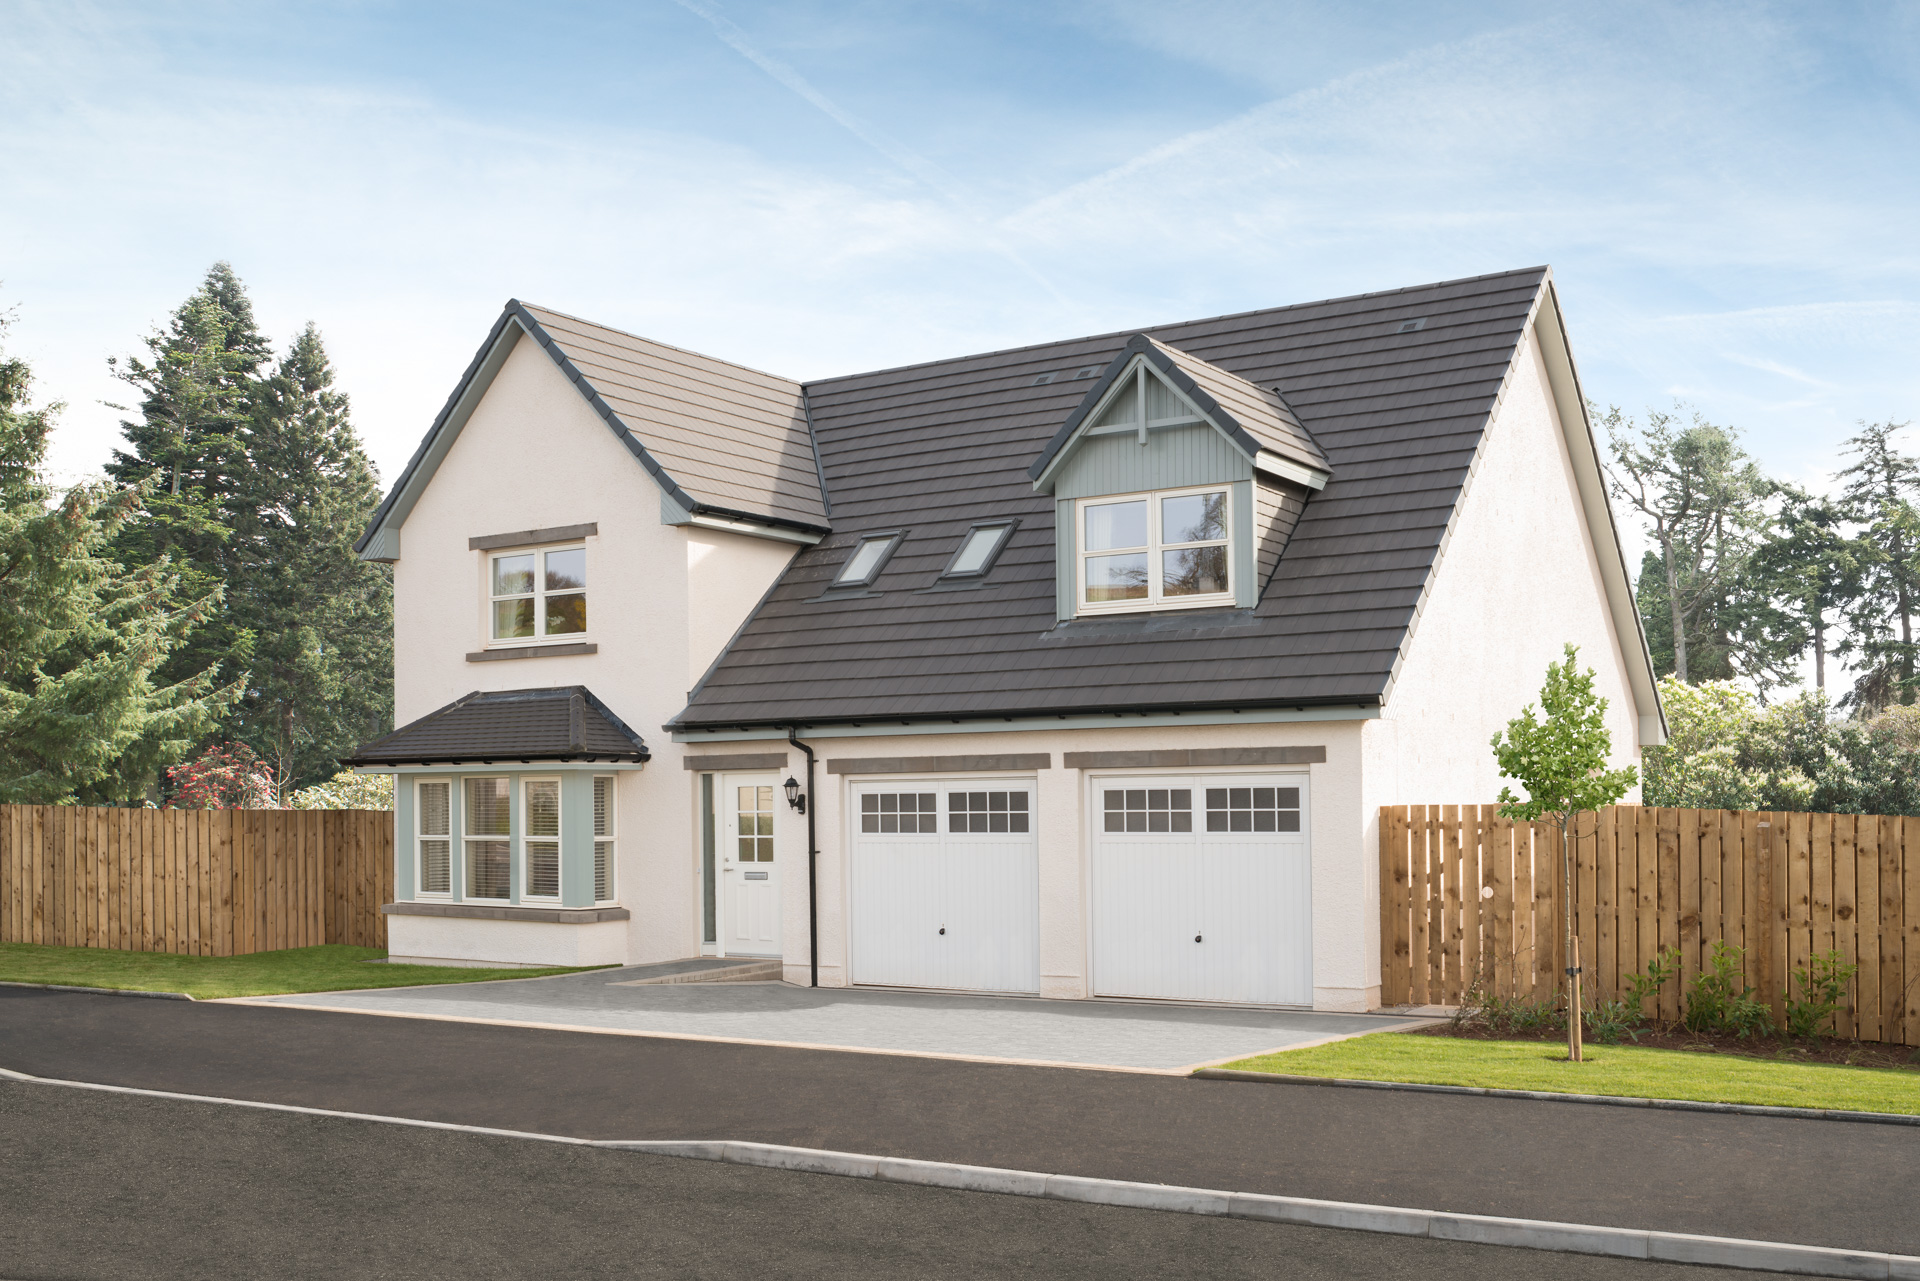 Plot 13 - The Marr - The Beeches